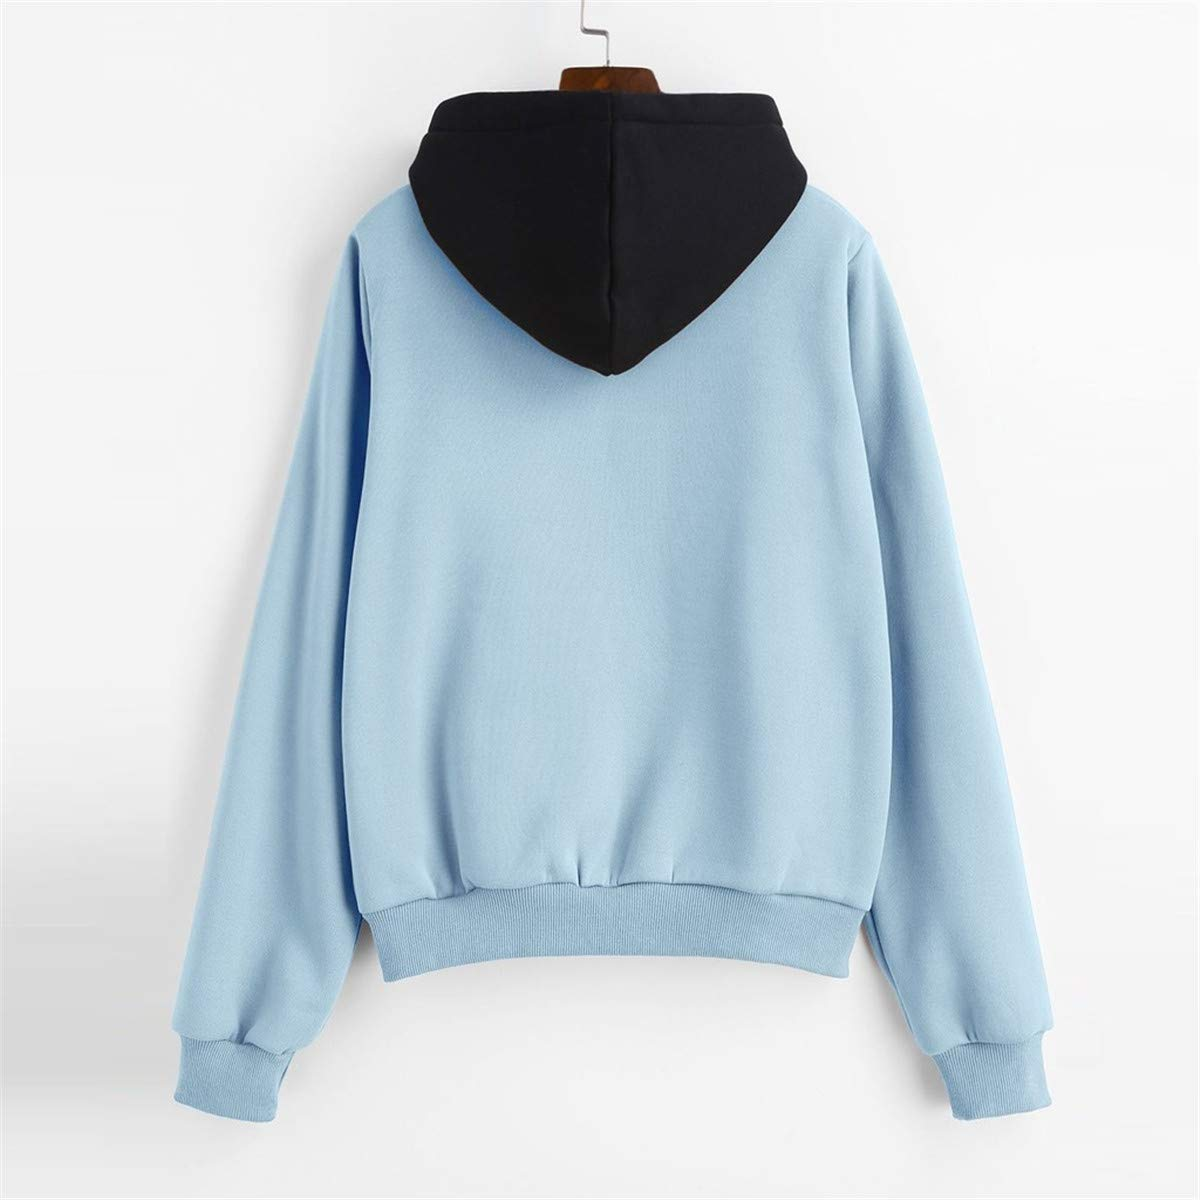 Thenxin Womens Long Sleeve Hoodie Sweatshirt Casual Drawstring Pullover Top with Front Pocket